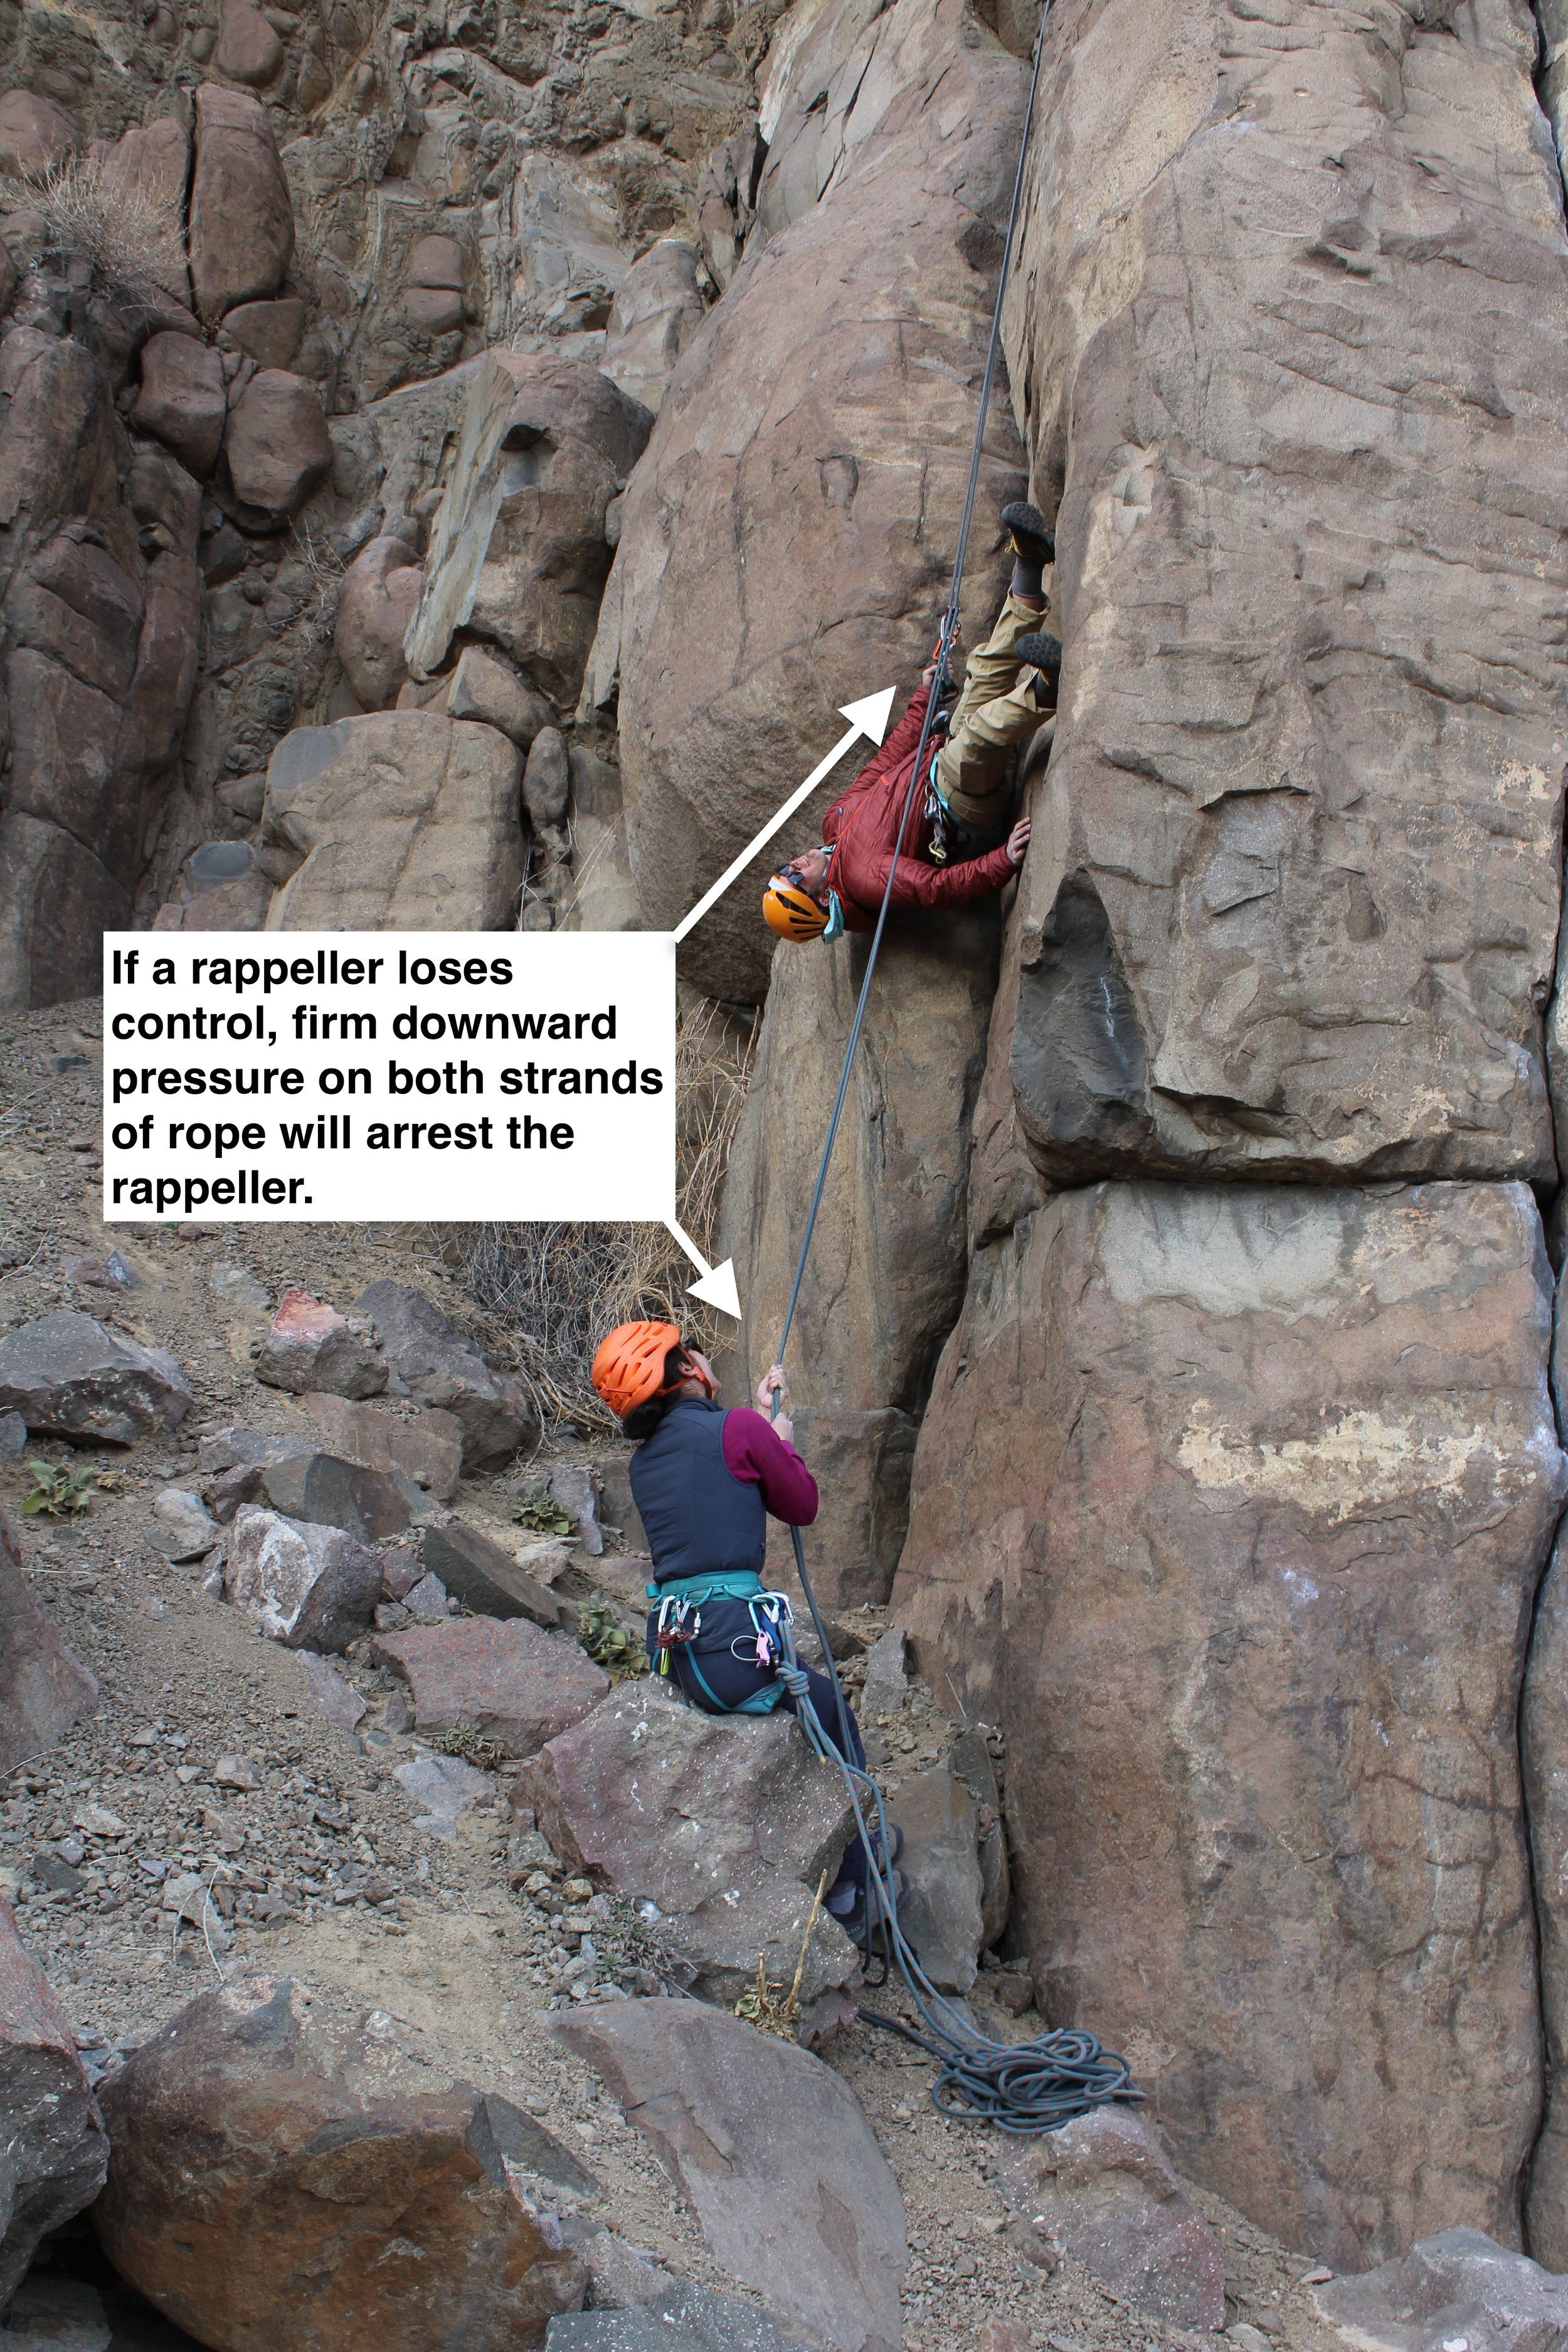 When rappellers lose control it happens quickly and unexpectedly, but a quick and firm tug on the brake strands will bring the rappeller to a halt.